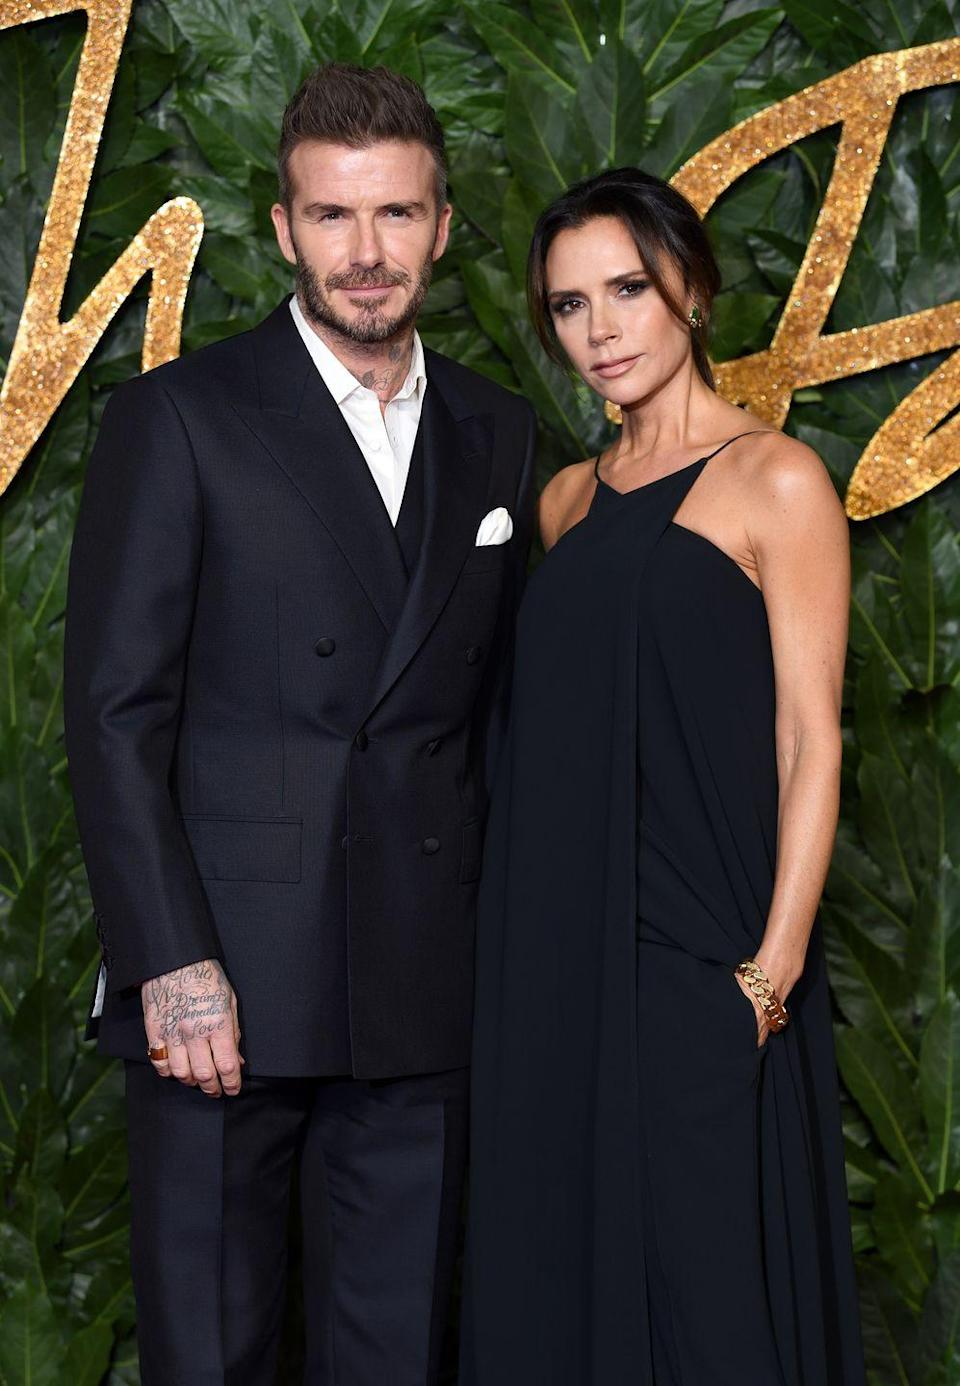 "<p>The most stylish couple ever had an <a href=""https://www.popsugar.com/celebrity/photo-gallery/43688948/embed/43688952/nuptials-reportedly-cost-whopping-800000"" rel=""nofollow noopener"" target=""_blank"" data-ylk=""slk:$800,000 bash"" class=""link rapid-noclick-resp"">$800,000 bash</a> at Ireland's Luttrellstown Castle on July 4, 1999. More than 200 people attended the event. Elton John was supposed to perform at the reception, but had a heart attack that stopped him from doing so. </p>"